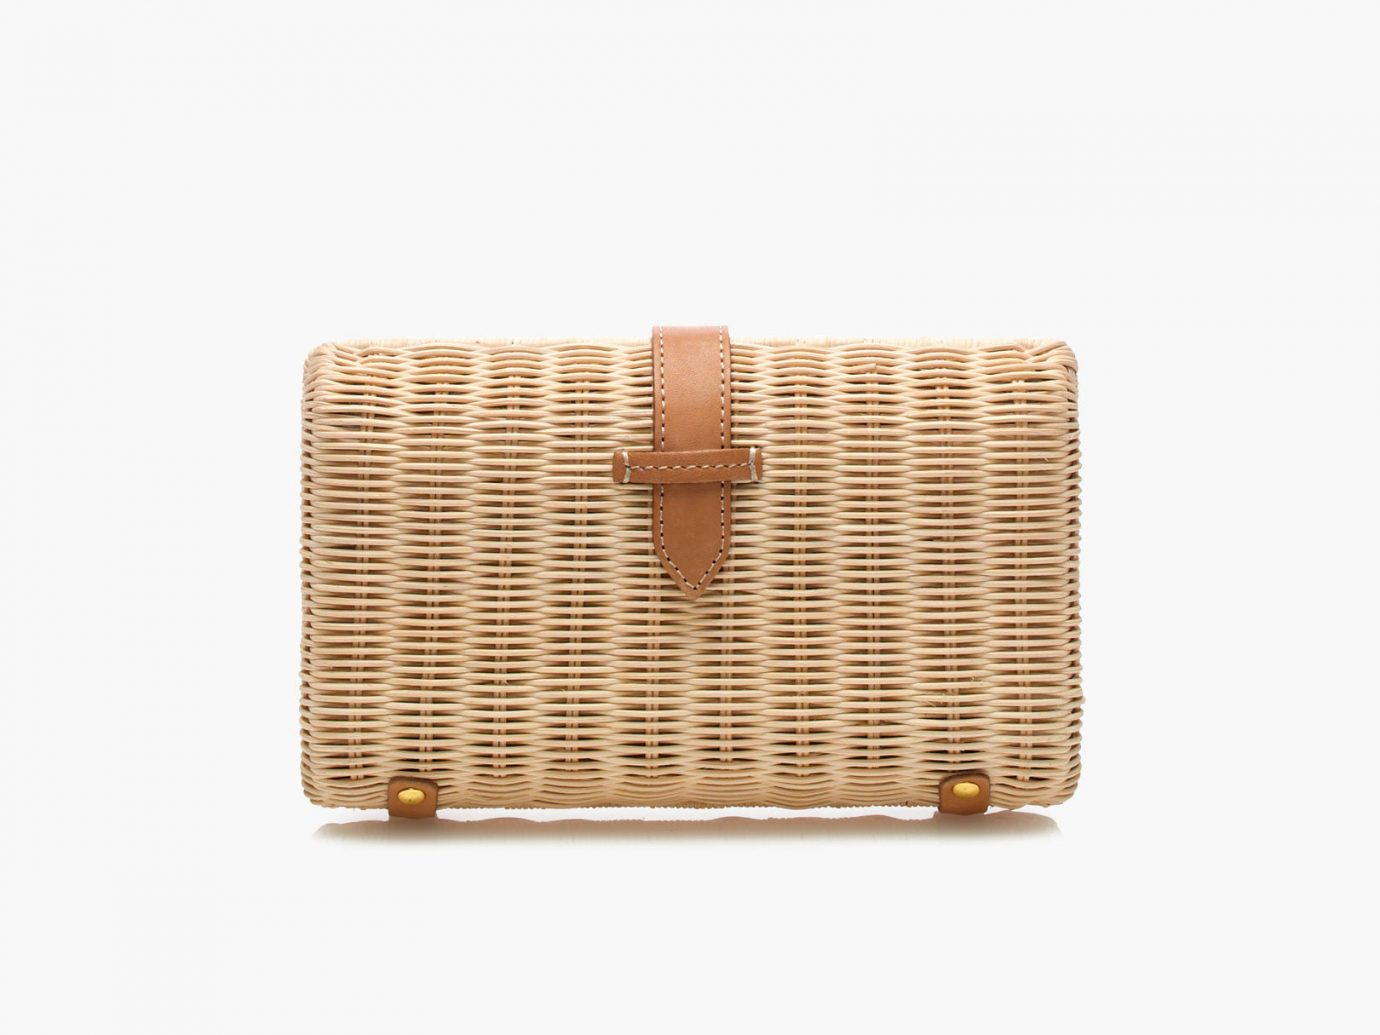 Style + Design basket container fashion accessory handbag beige shape rectangle leather wicker material